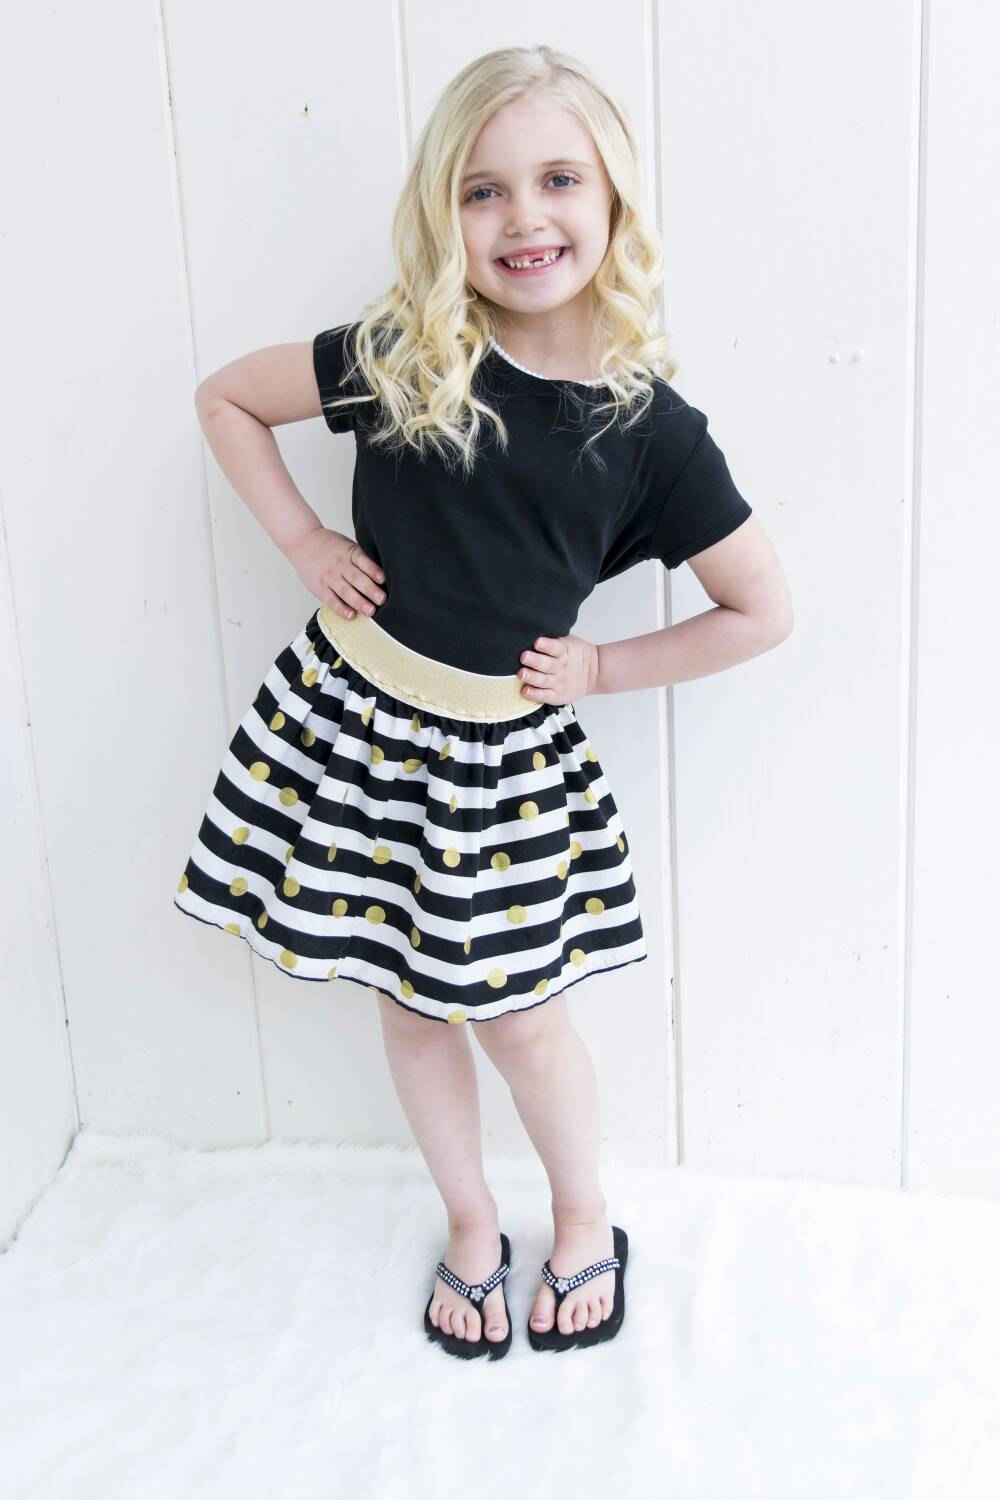 Girls Skirts Baby Skirt Gold Skirt Girls Skirt Baby Skirt Toddler Circle  Skirt Toddler Skirt Black Gold White sold by BizzieBeeBoutique on Storenvy